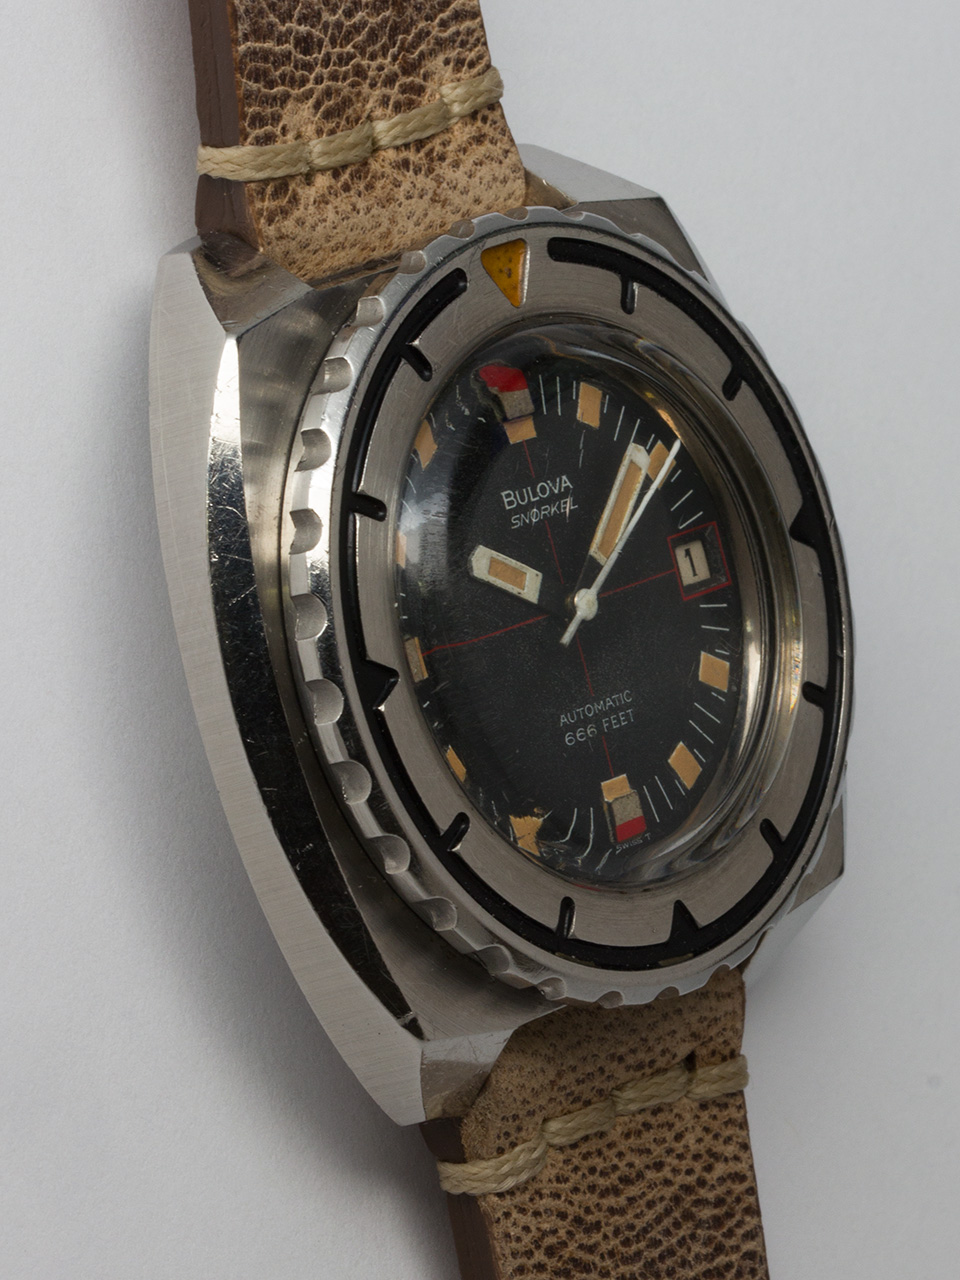 Bulova Snorkel Diver's Stainless Steel circa 1970